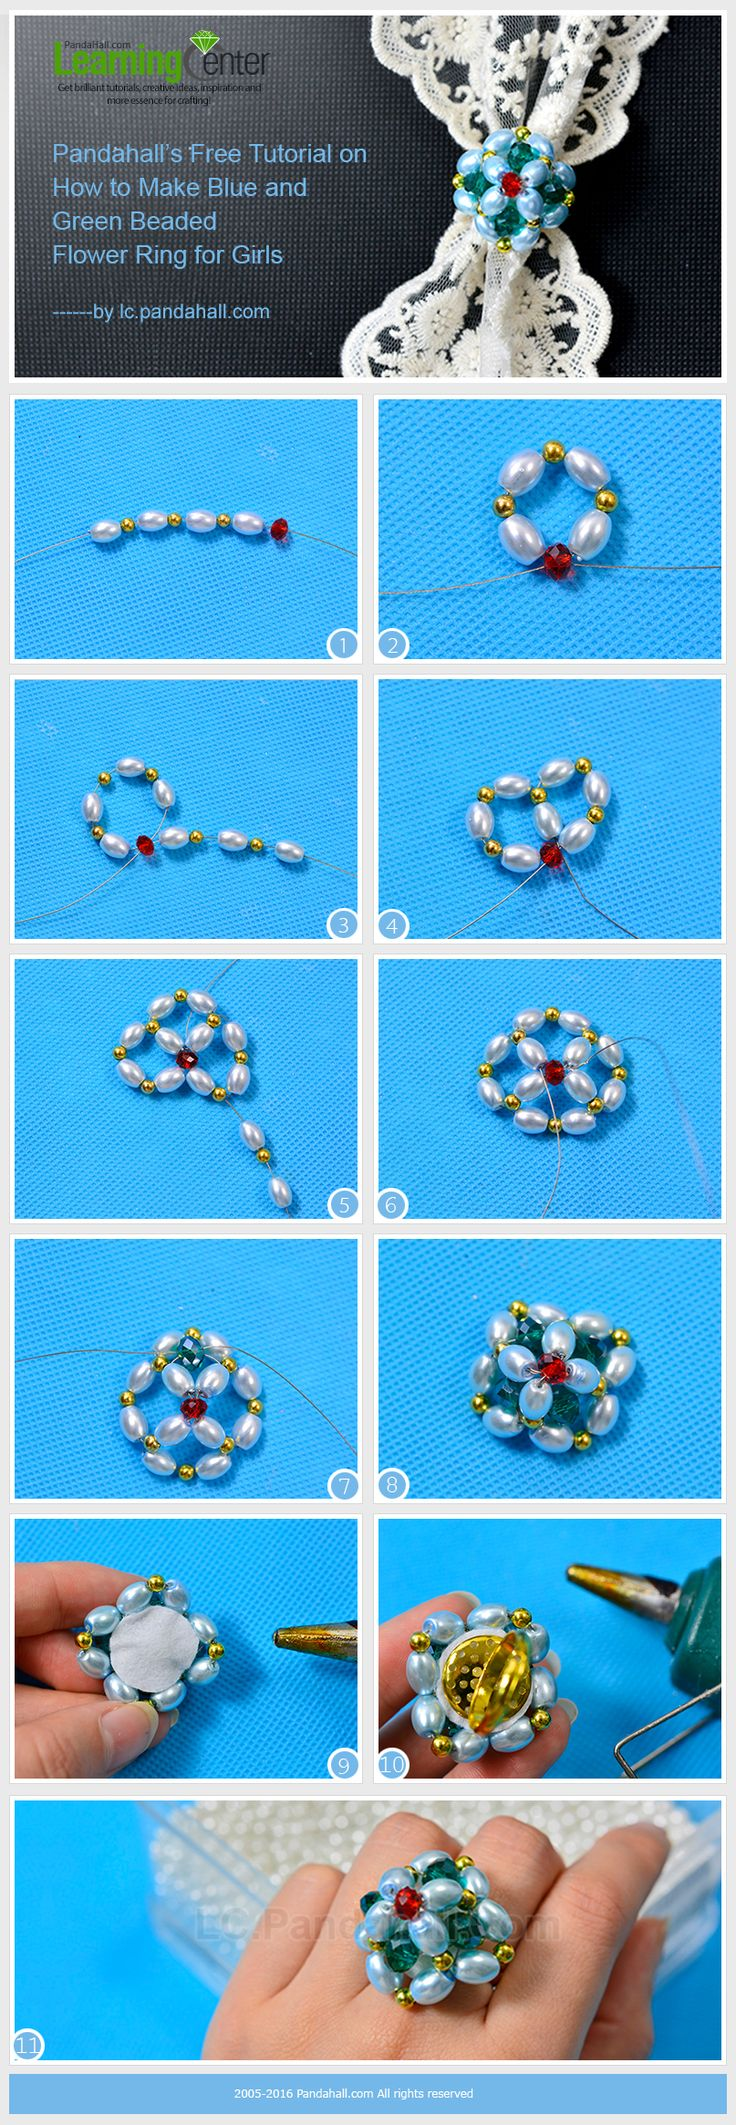 Pandahallu0027s Free Tutorial On How To Make Blue And Green Beaded Flower Ring  For Girls #